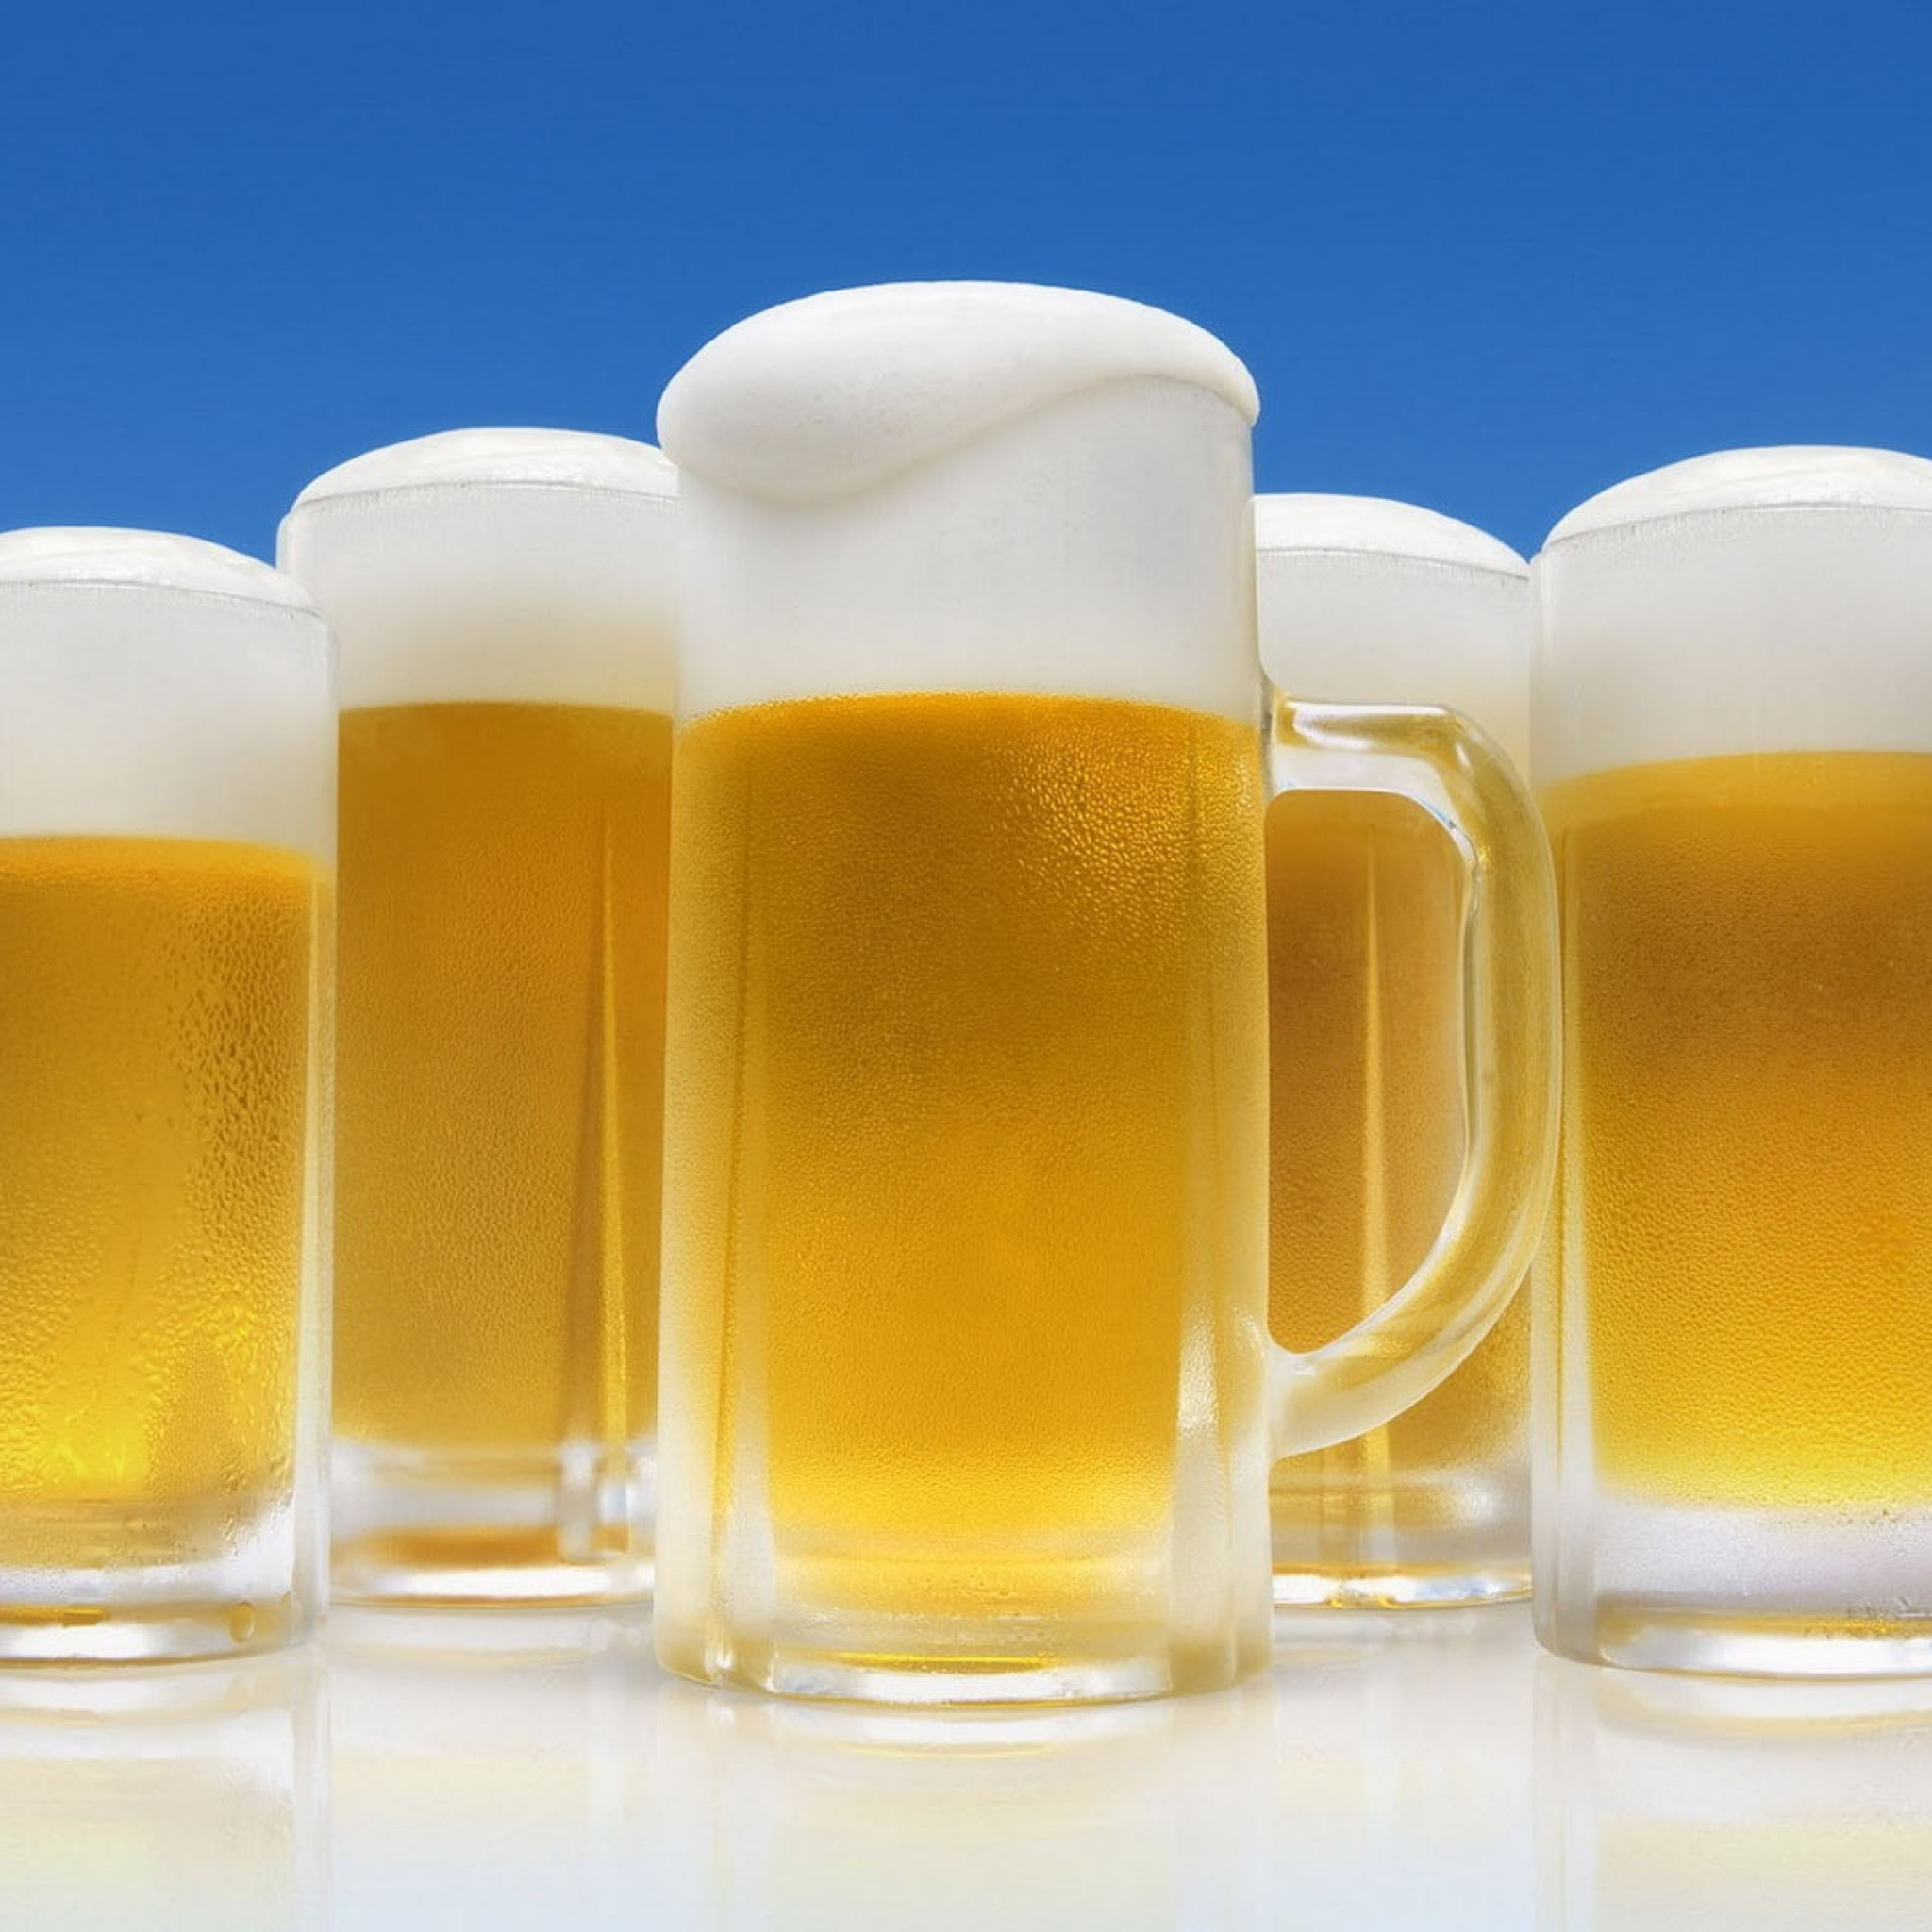 10 Reasons why beer is not bad for you